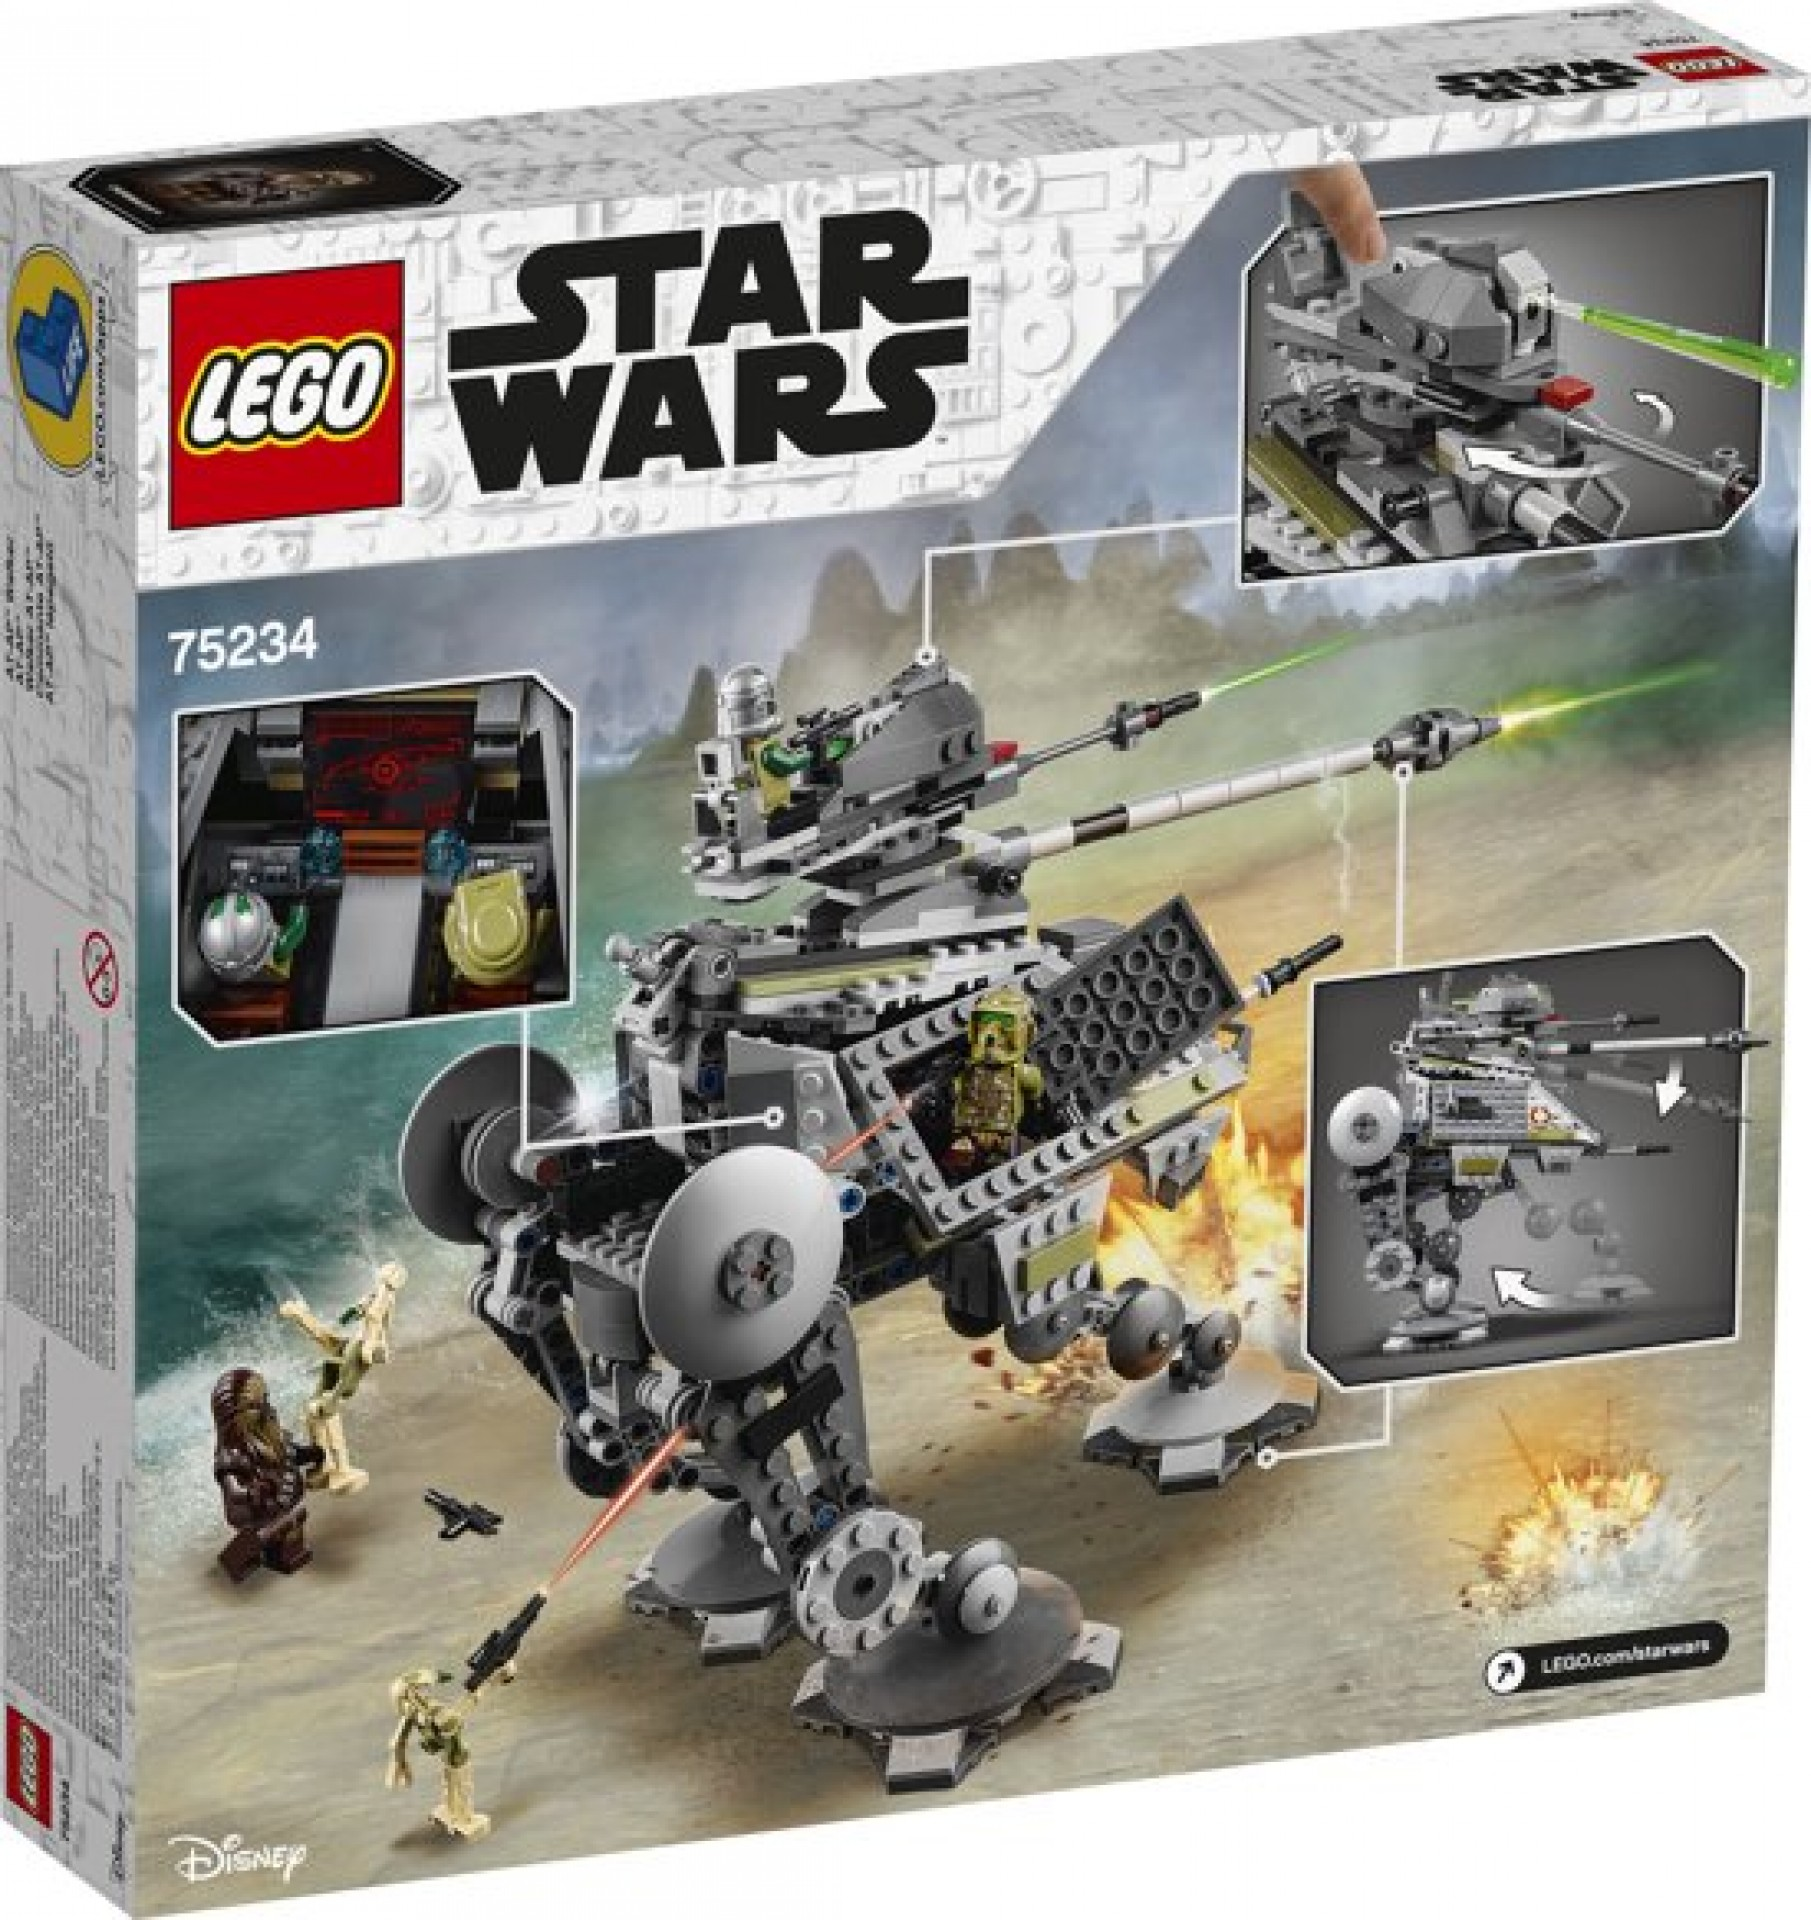 LEGO 75234 Star Wars AT-AP Walker Includes Chewbacca, Commander Gree and a Kashyyyk Clone Trooper Minifigures Gift Building Toy Set 689 Pieces